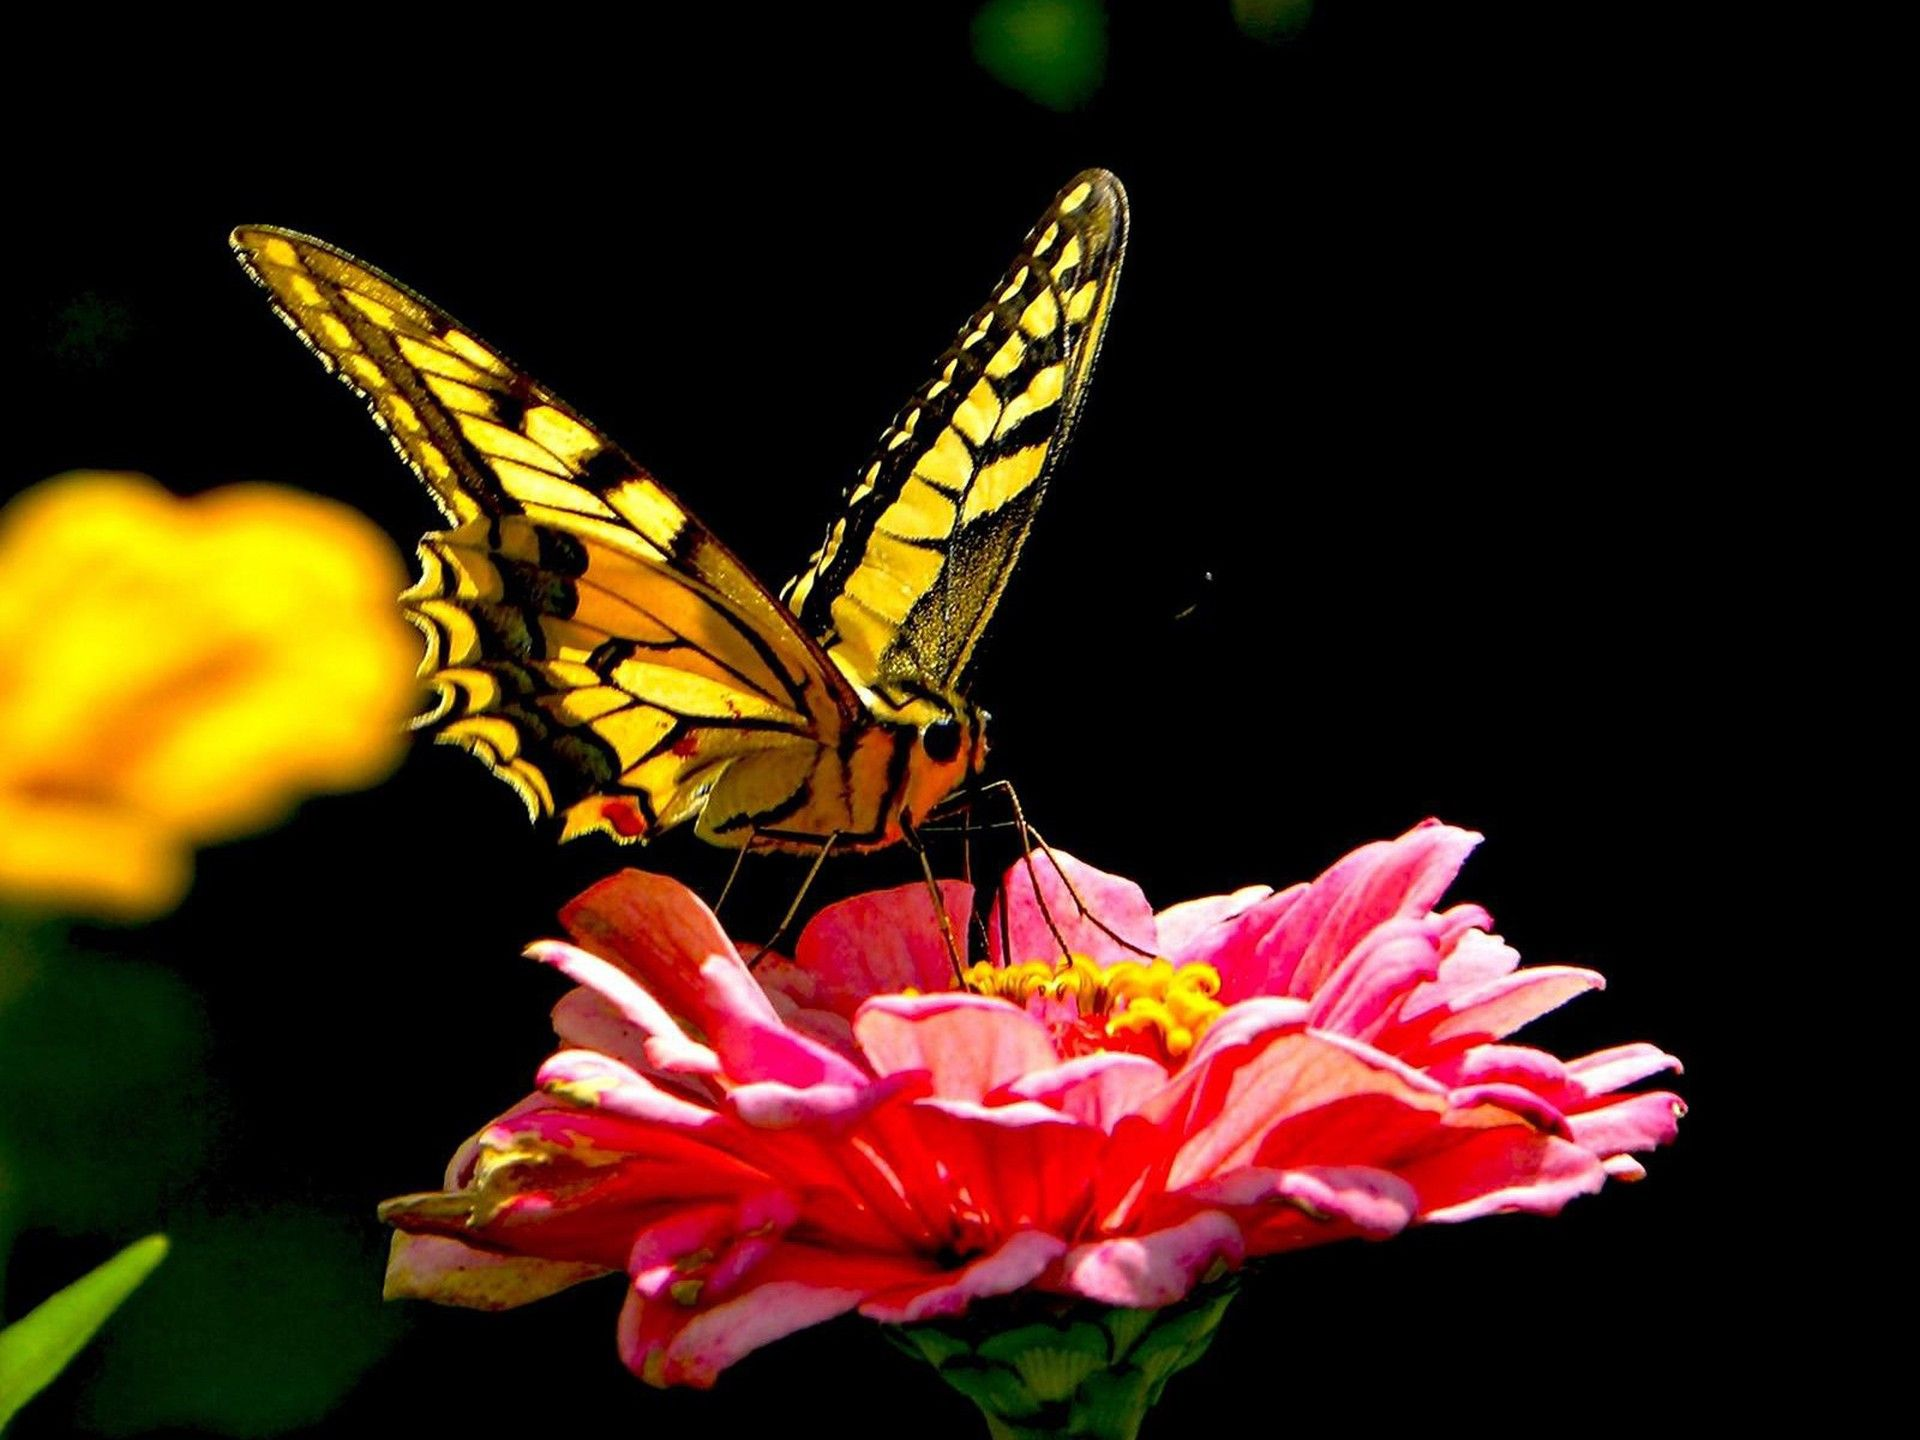 Dark Butterfly On Pink Flower Wallpaper Rate Select Rating Give